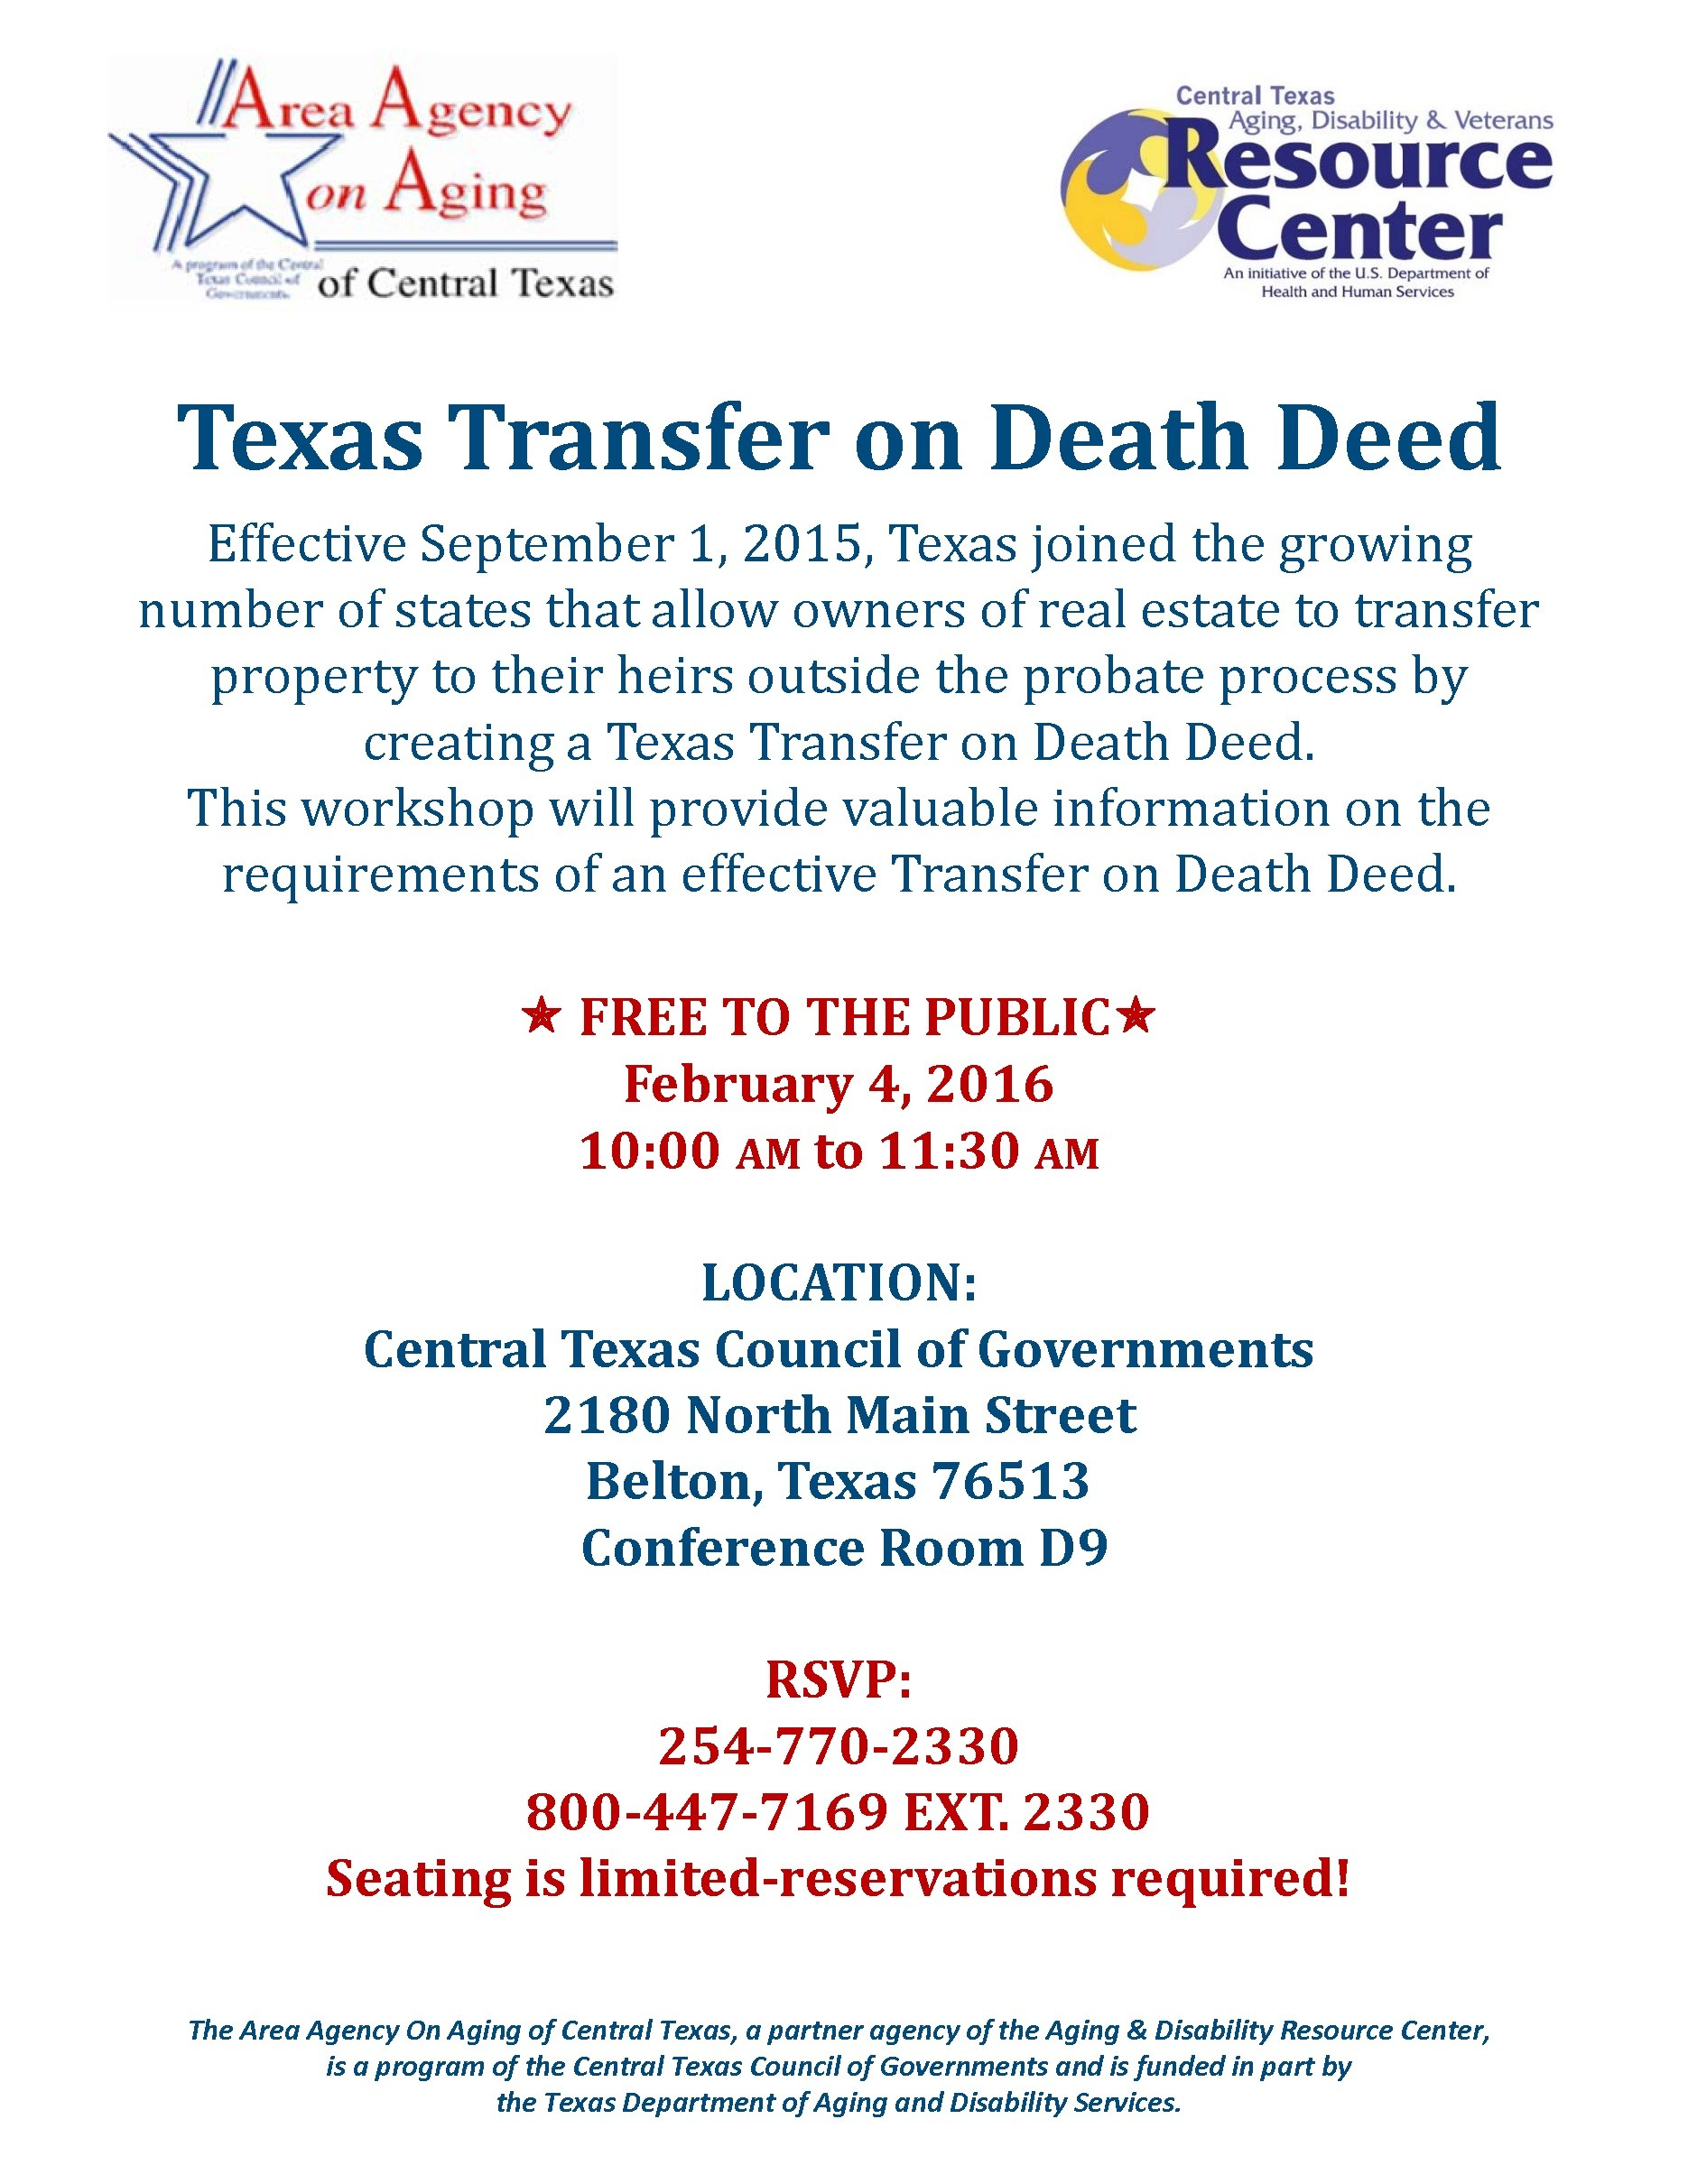 What Will Happen to Your Home When You Die? • Central Texas ...